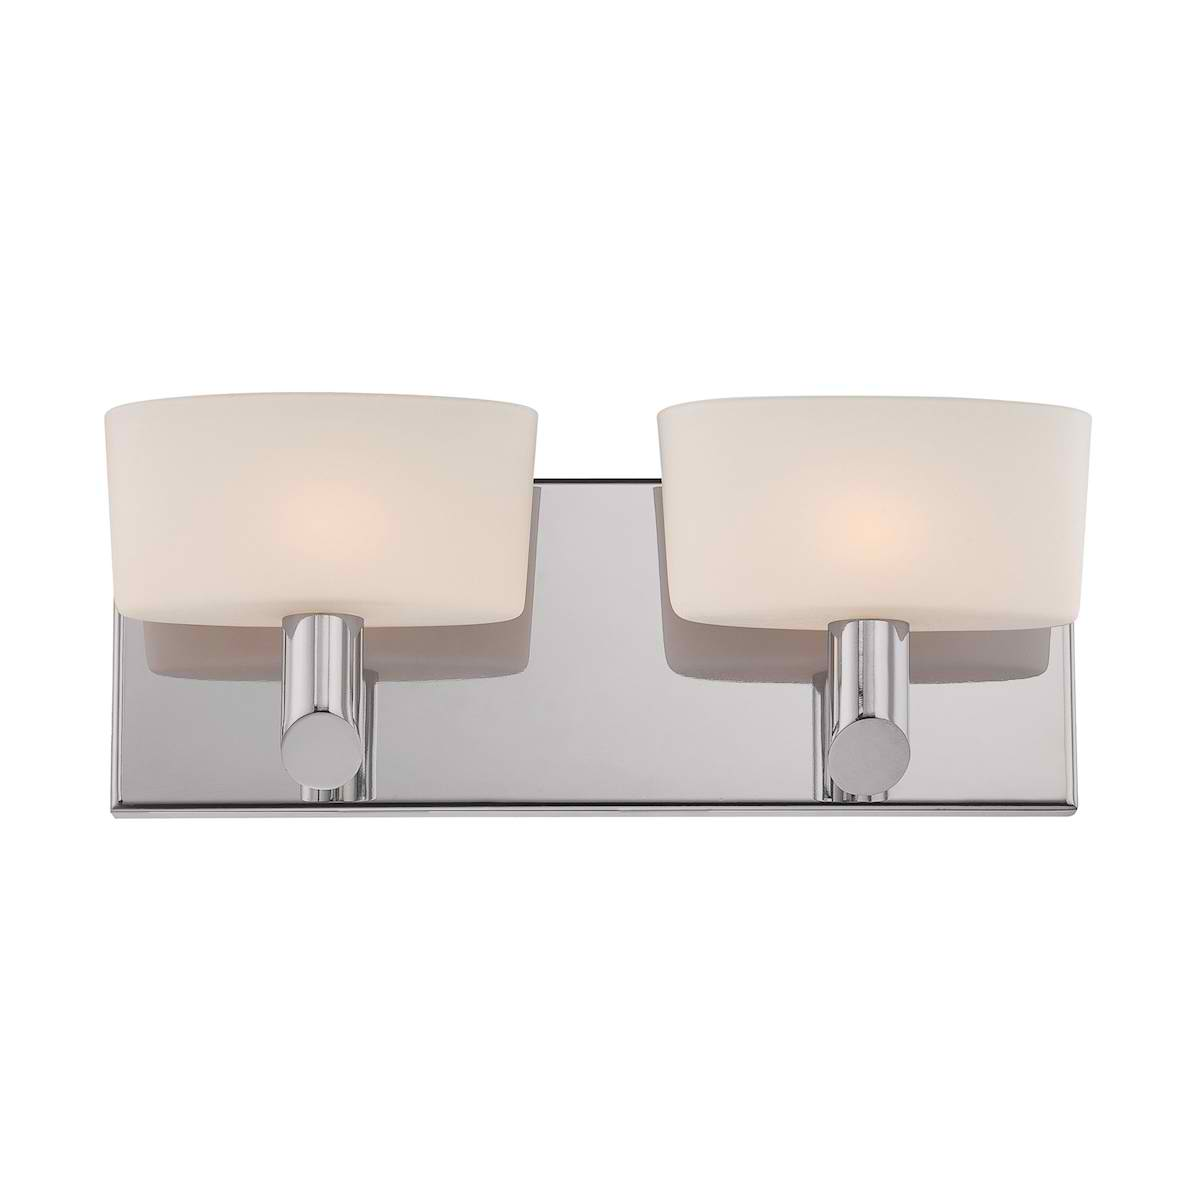 Toby 2L Wall Lamp W11 with Satin Nickel w/ Wh Opal Gl. 2Xg9 40W P/Nickle